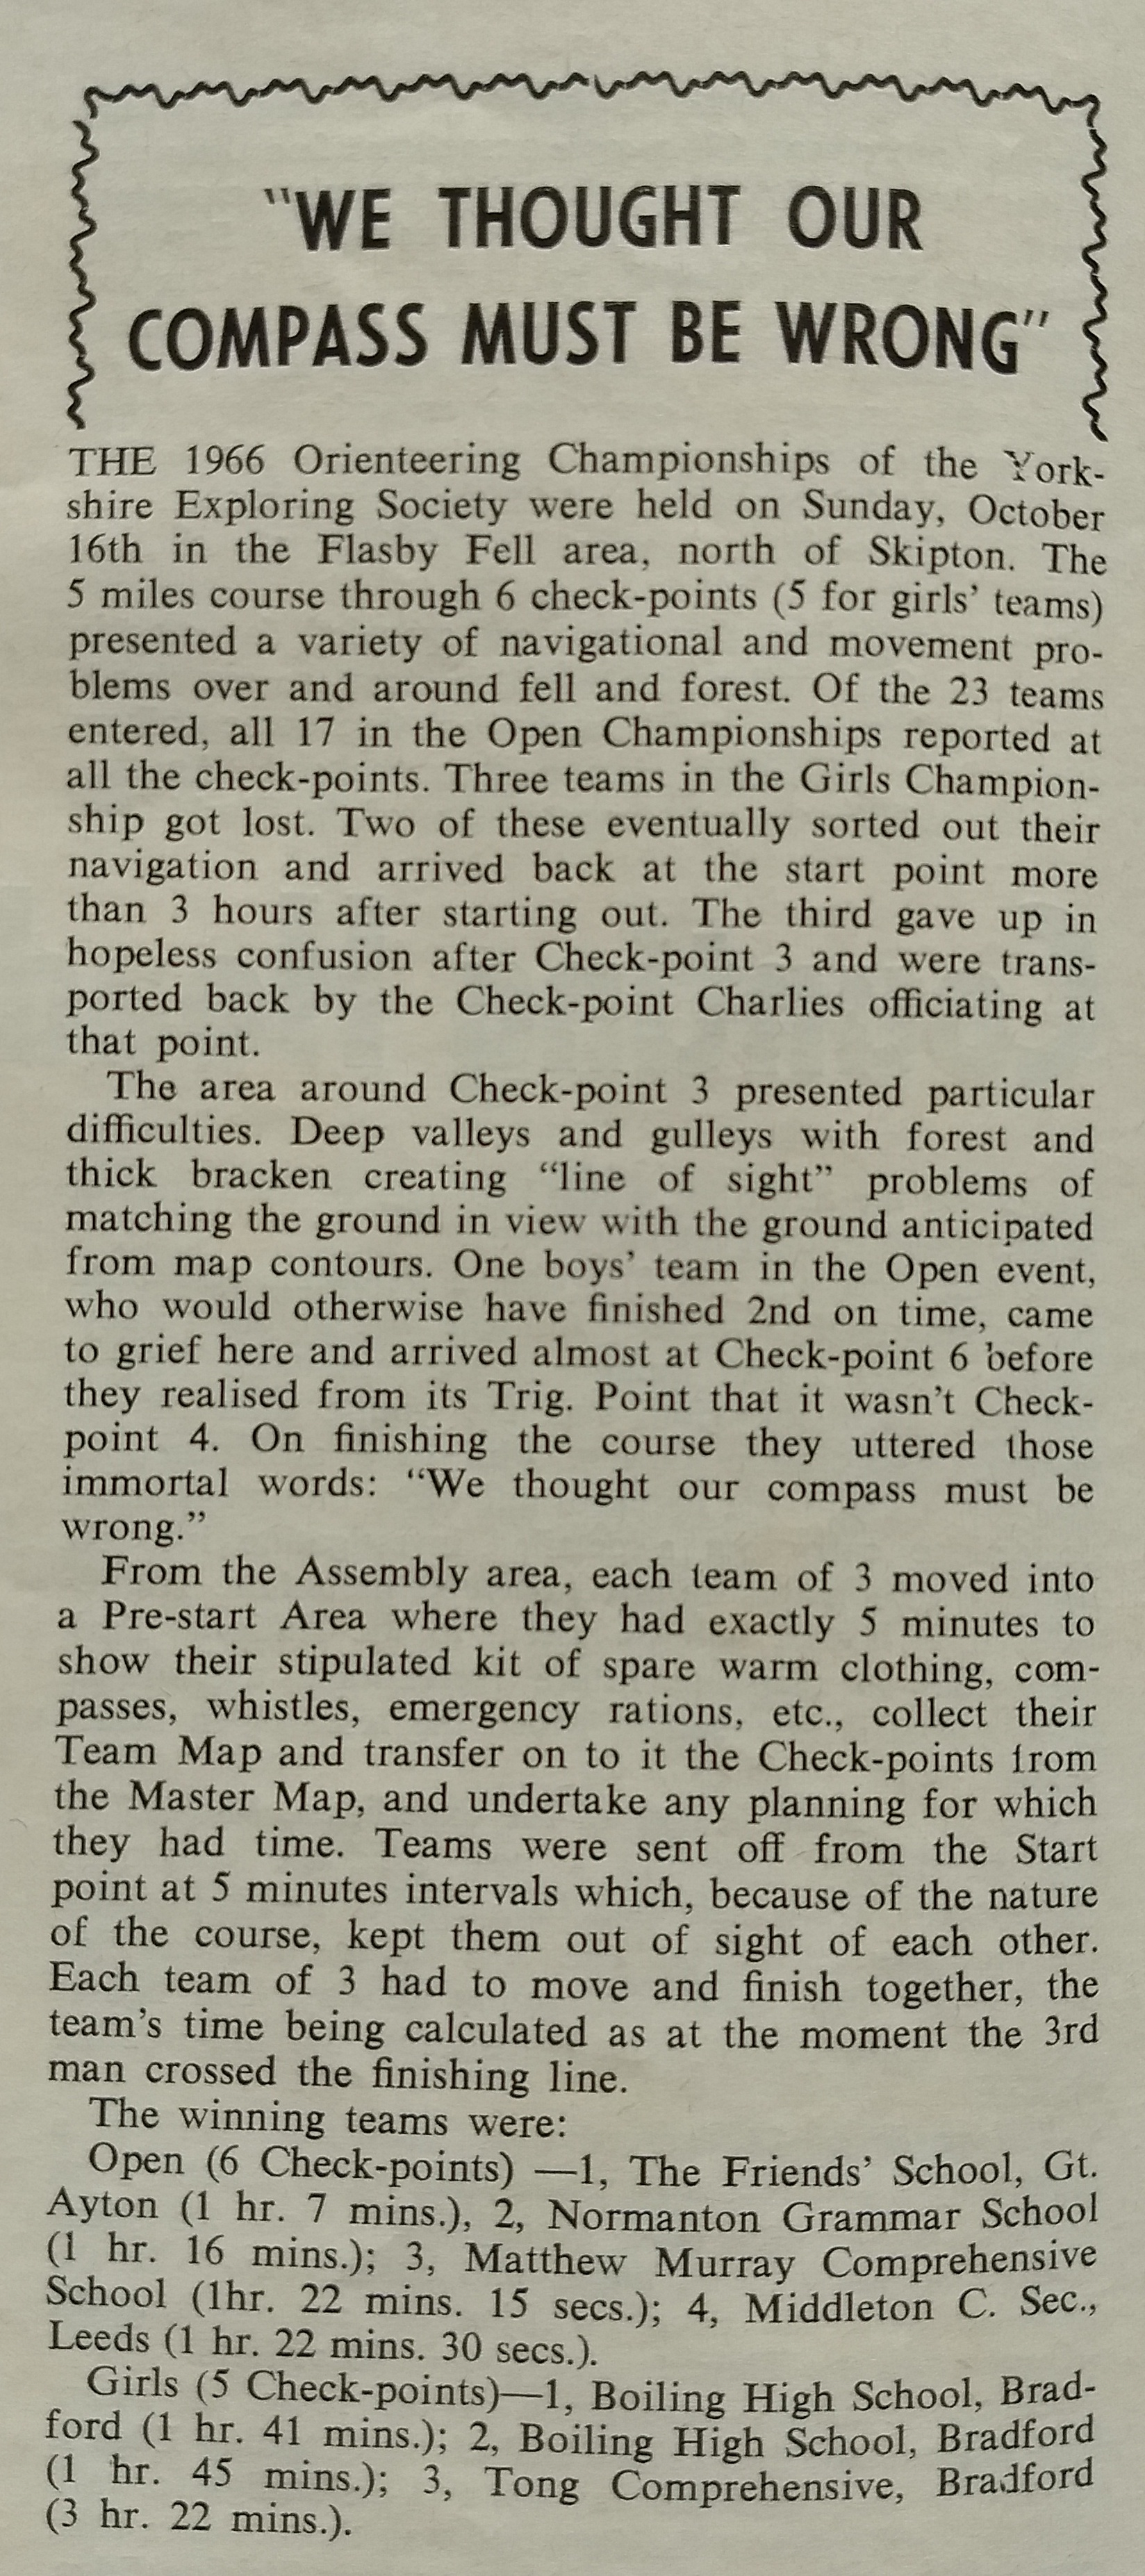 Clipping from The Climber November 1966